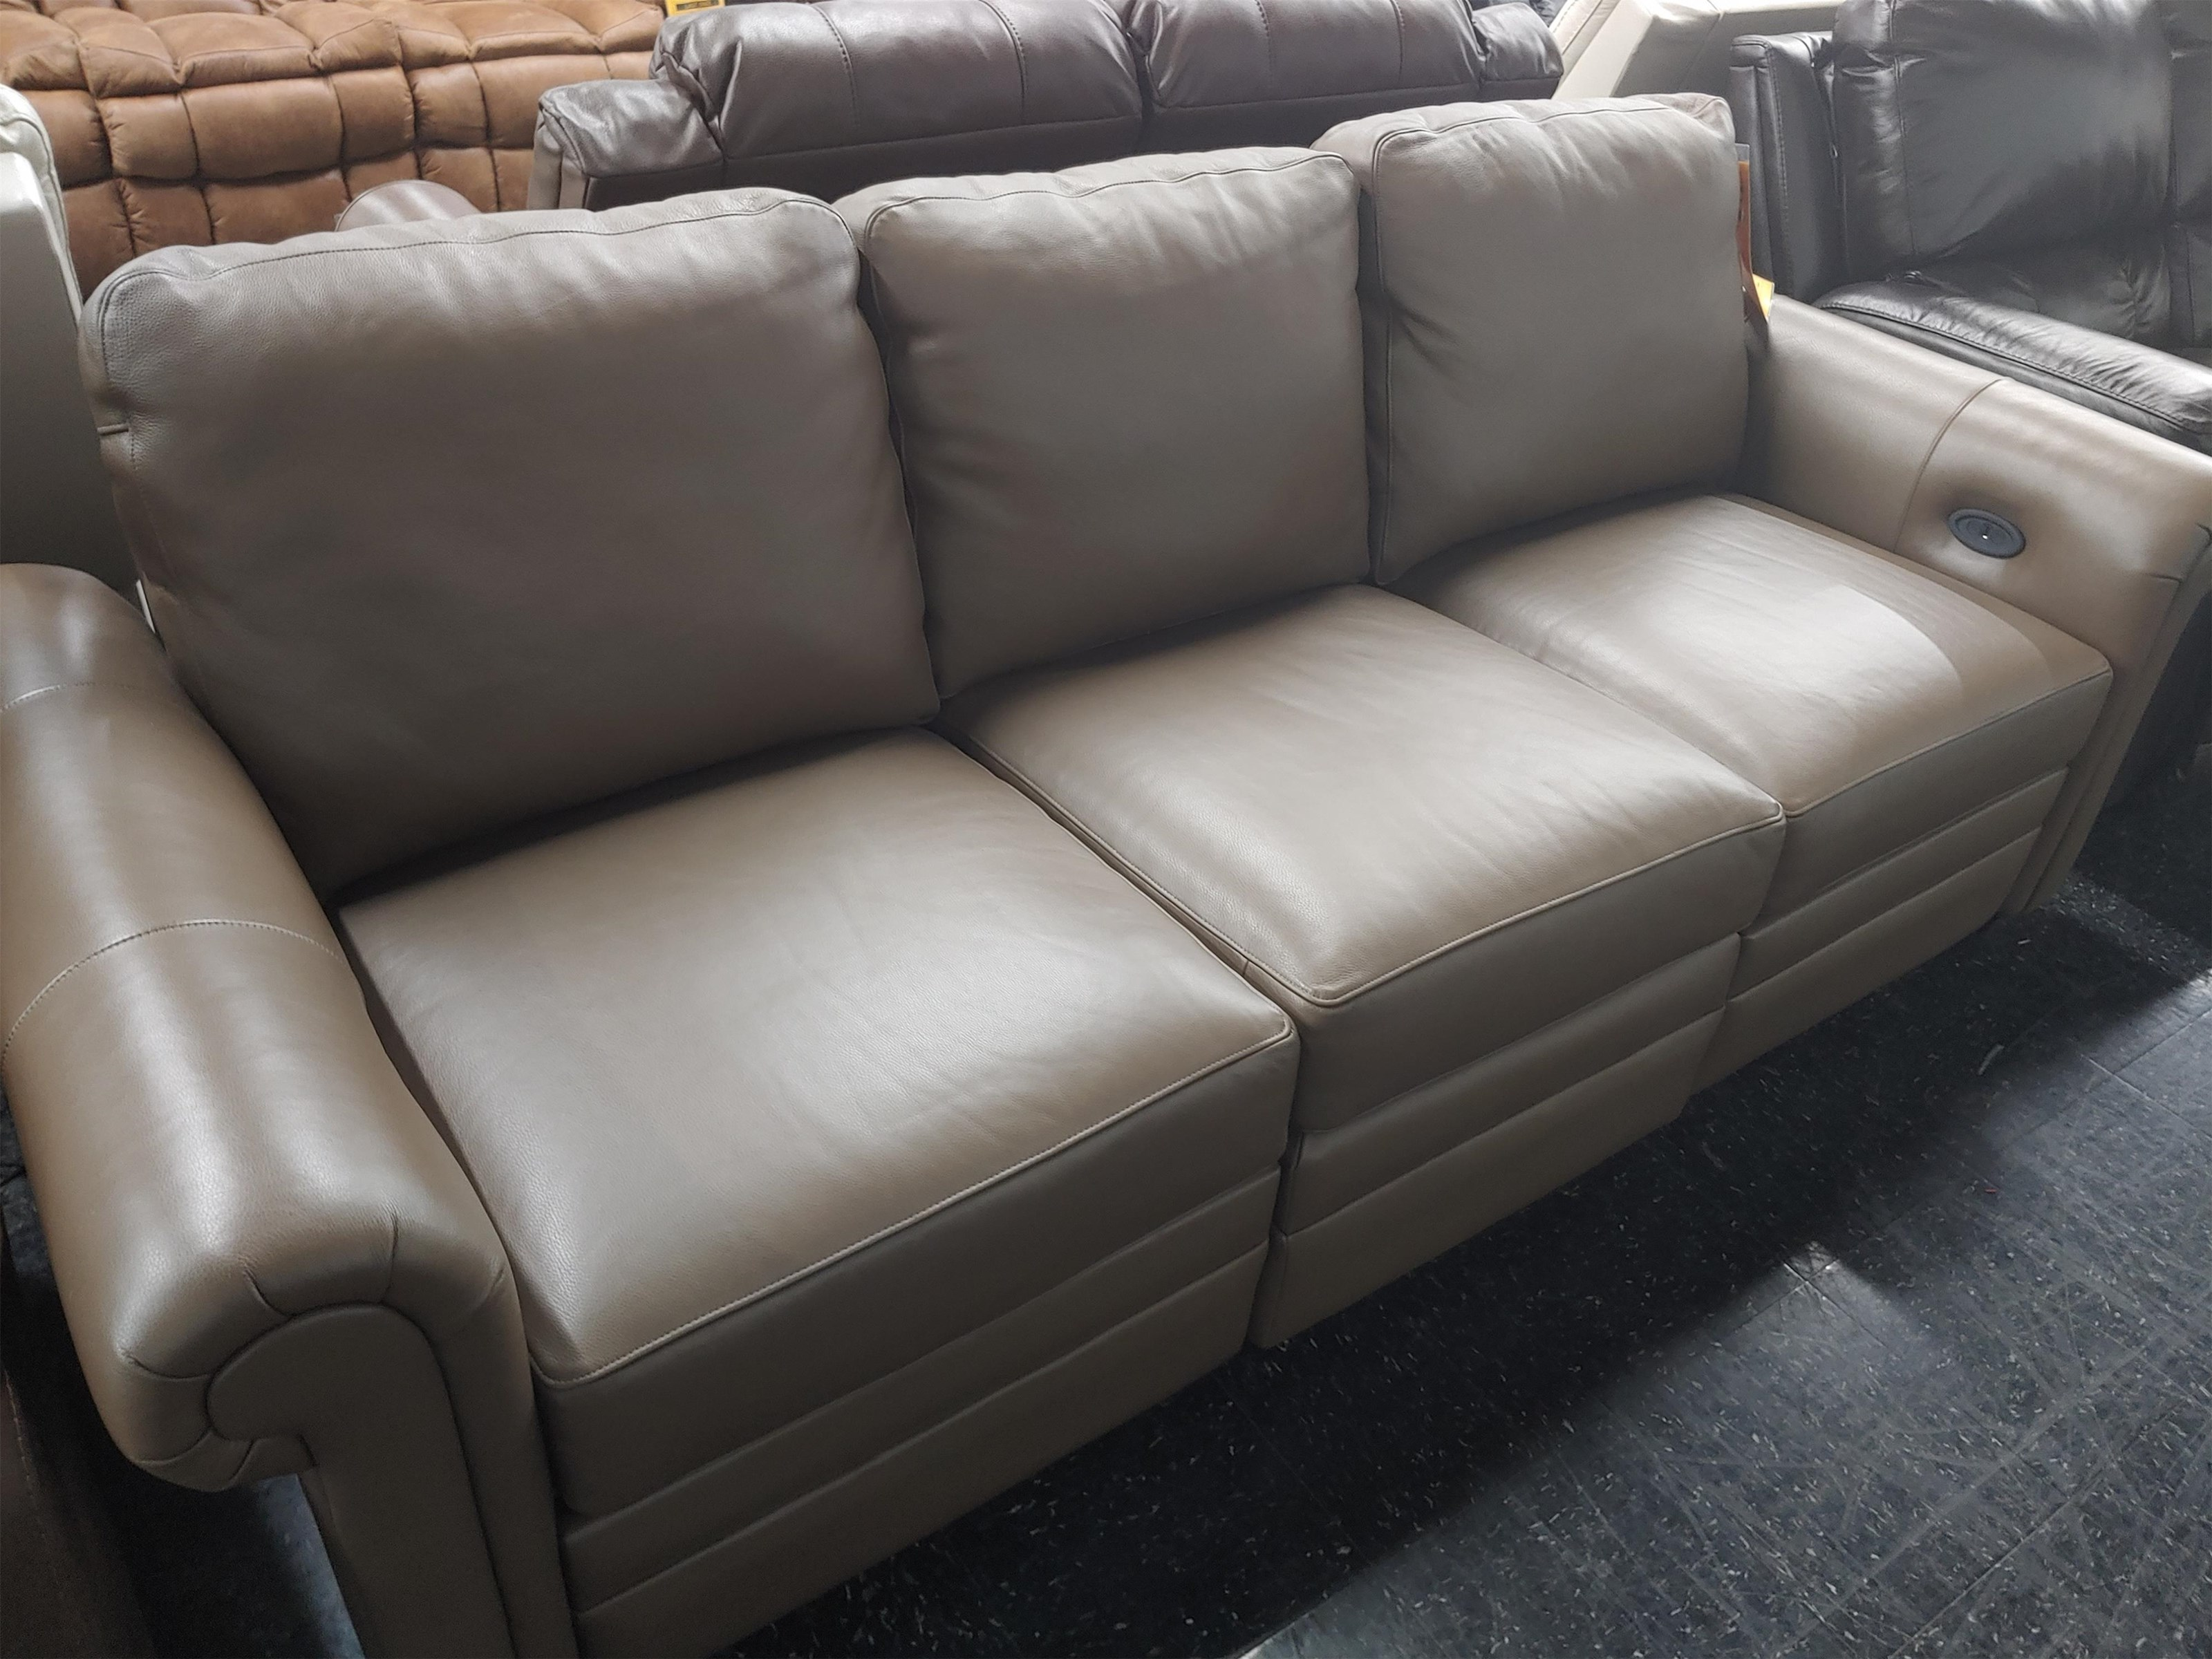 Last One Sofa Last One! Leather Match Power Sofa! by Craftmaster at Morris Home